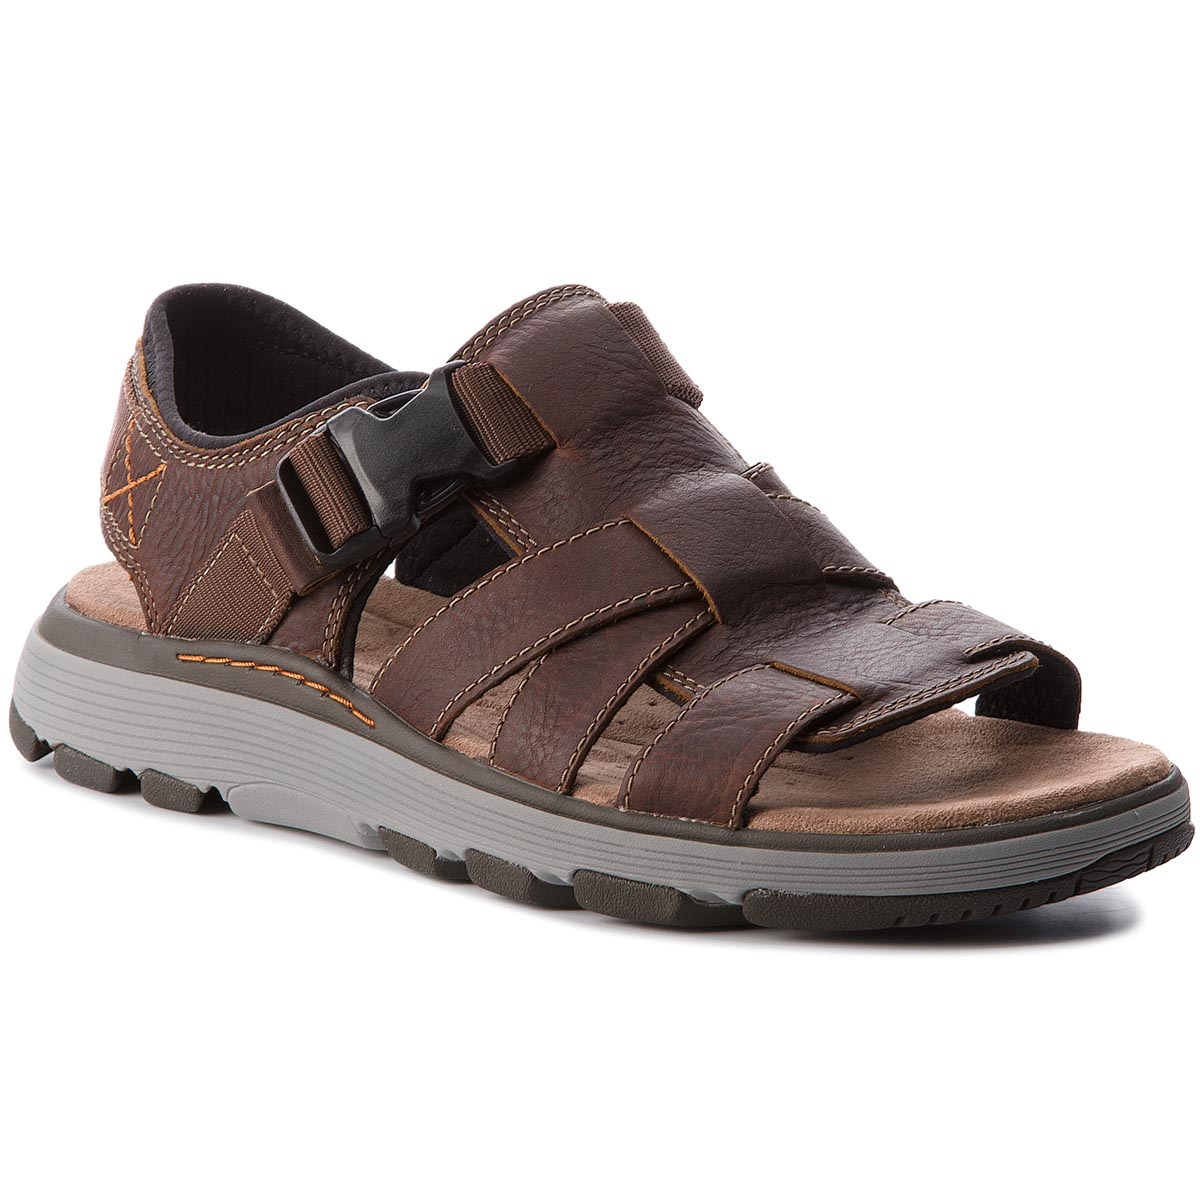 Sandale CLARKS - Un Trek Cove 261326207 Dark Tan Leather